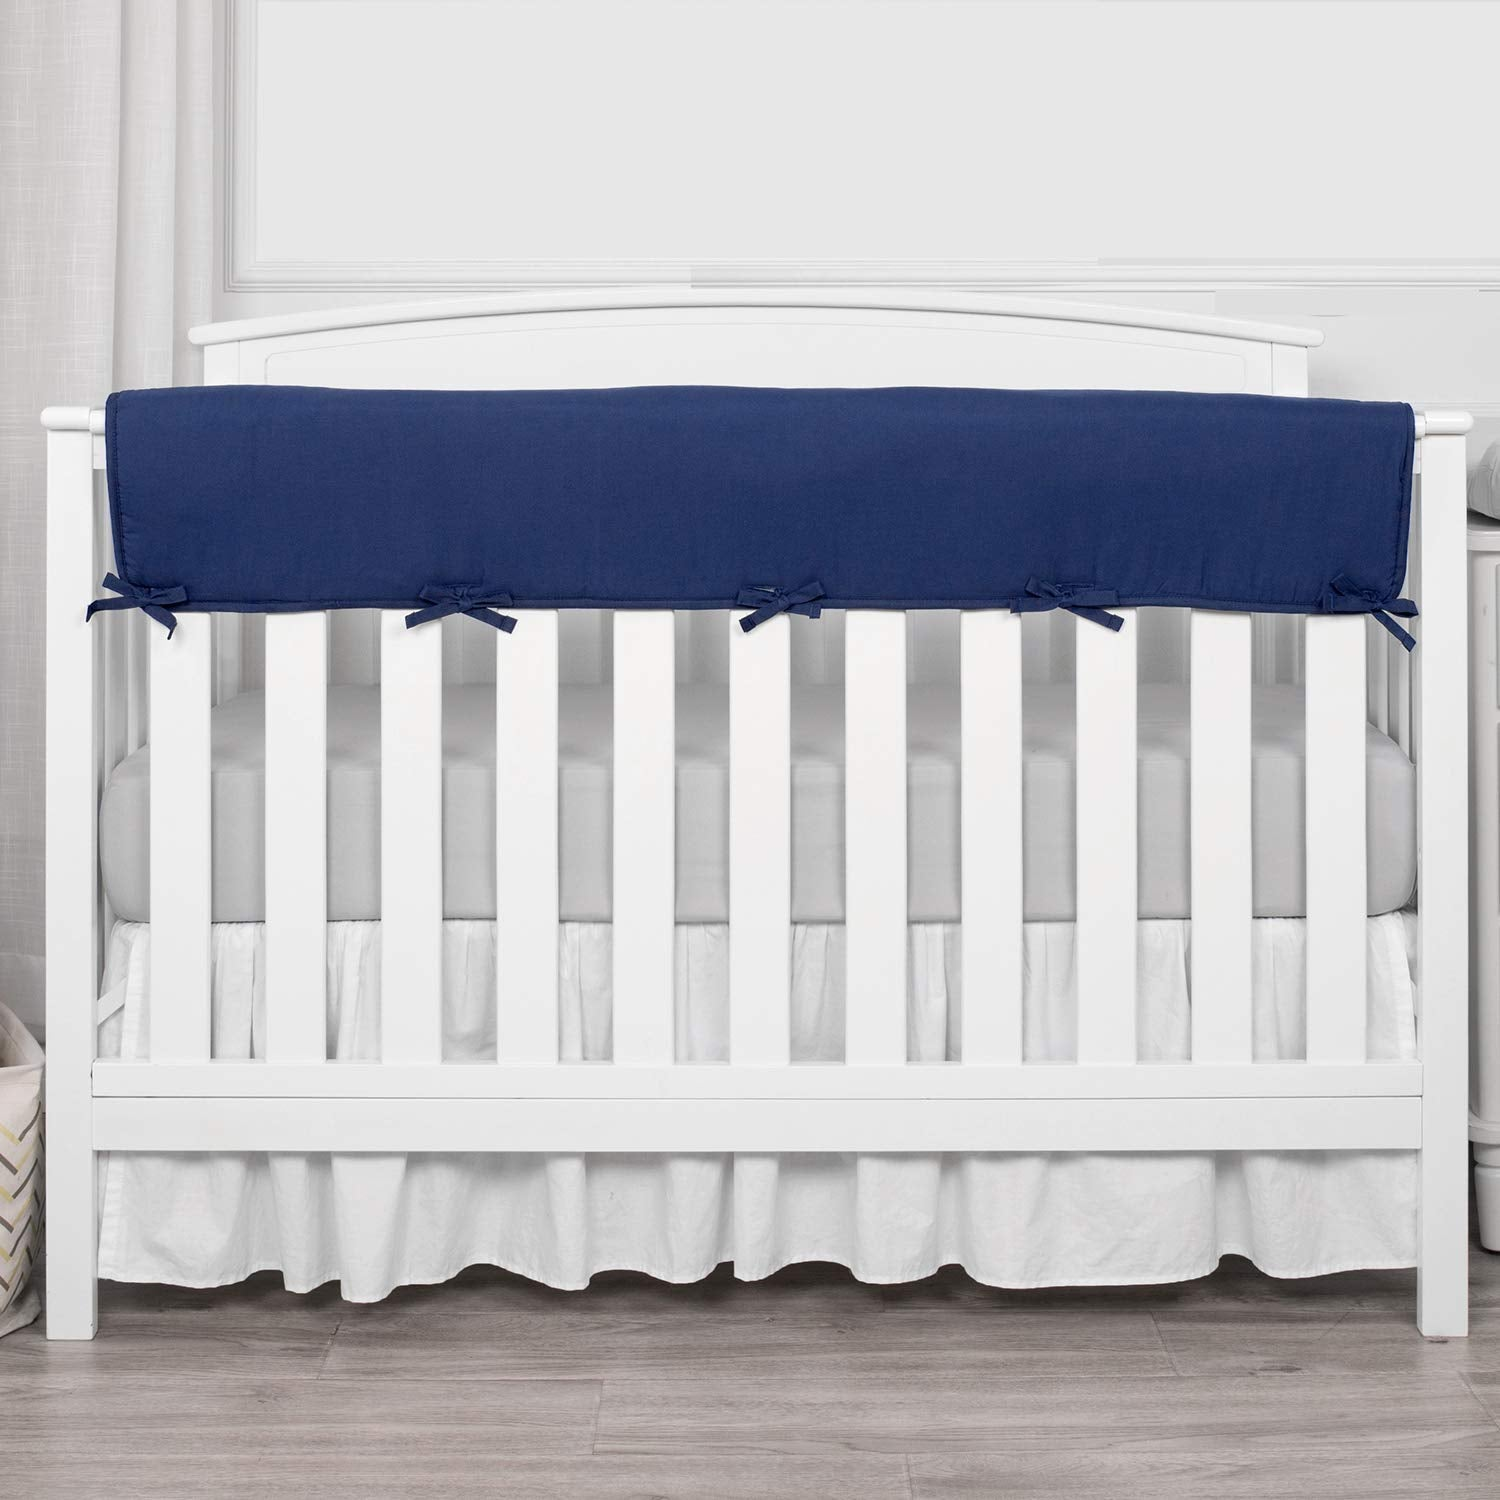 1-Pack Padded Baby Crib Rail Cover Protector Safe Teething Microfiber Polyester